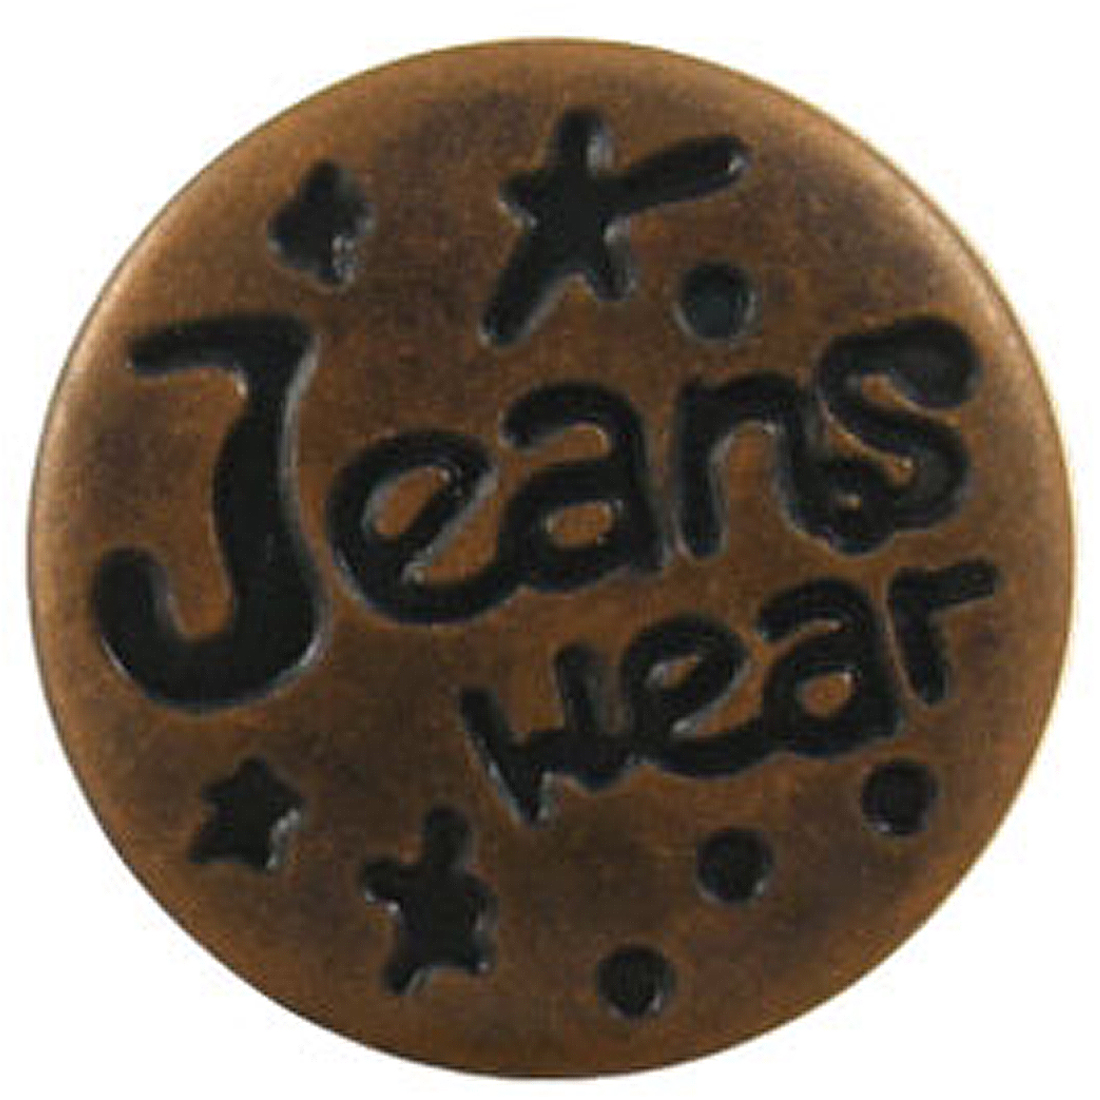 Replacement Brown Metal Carved Words Jeans Buttons 7 Pcs